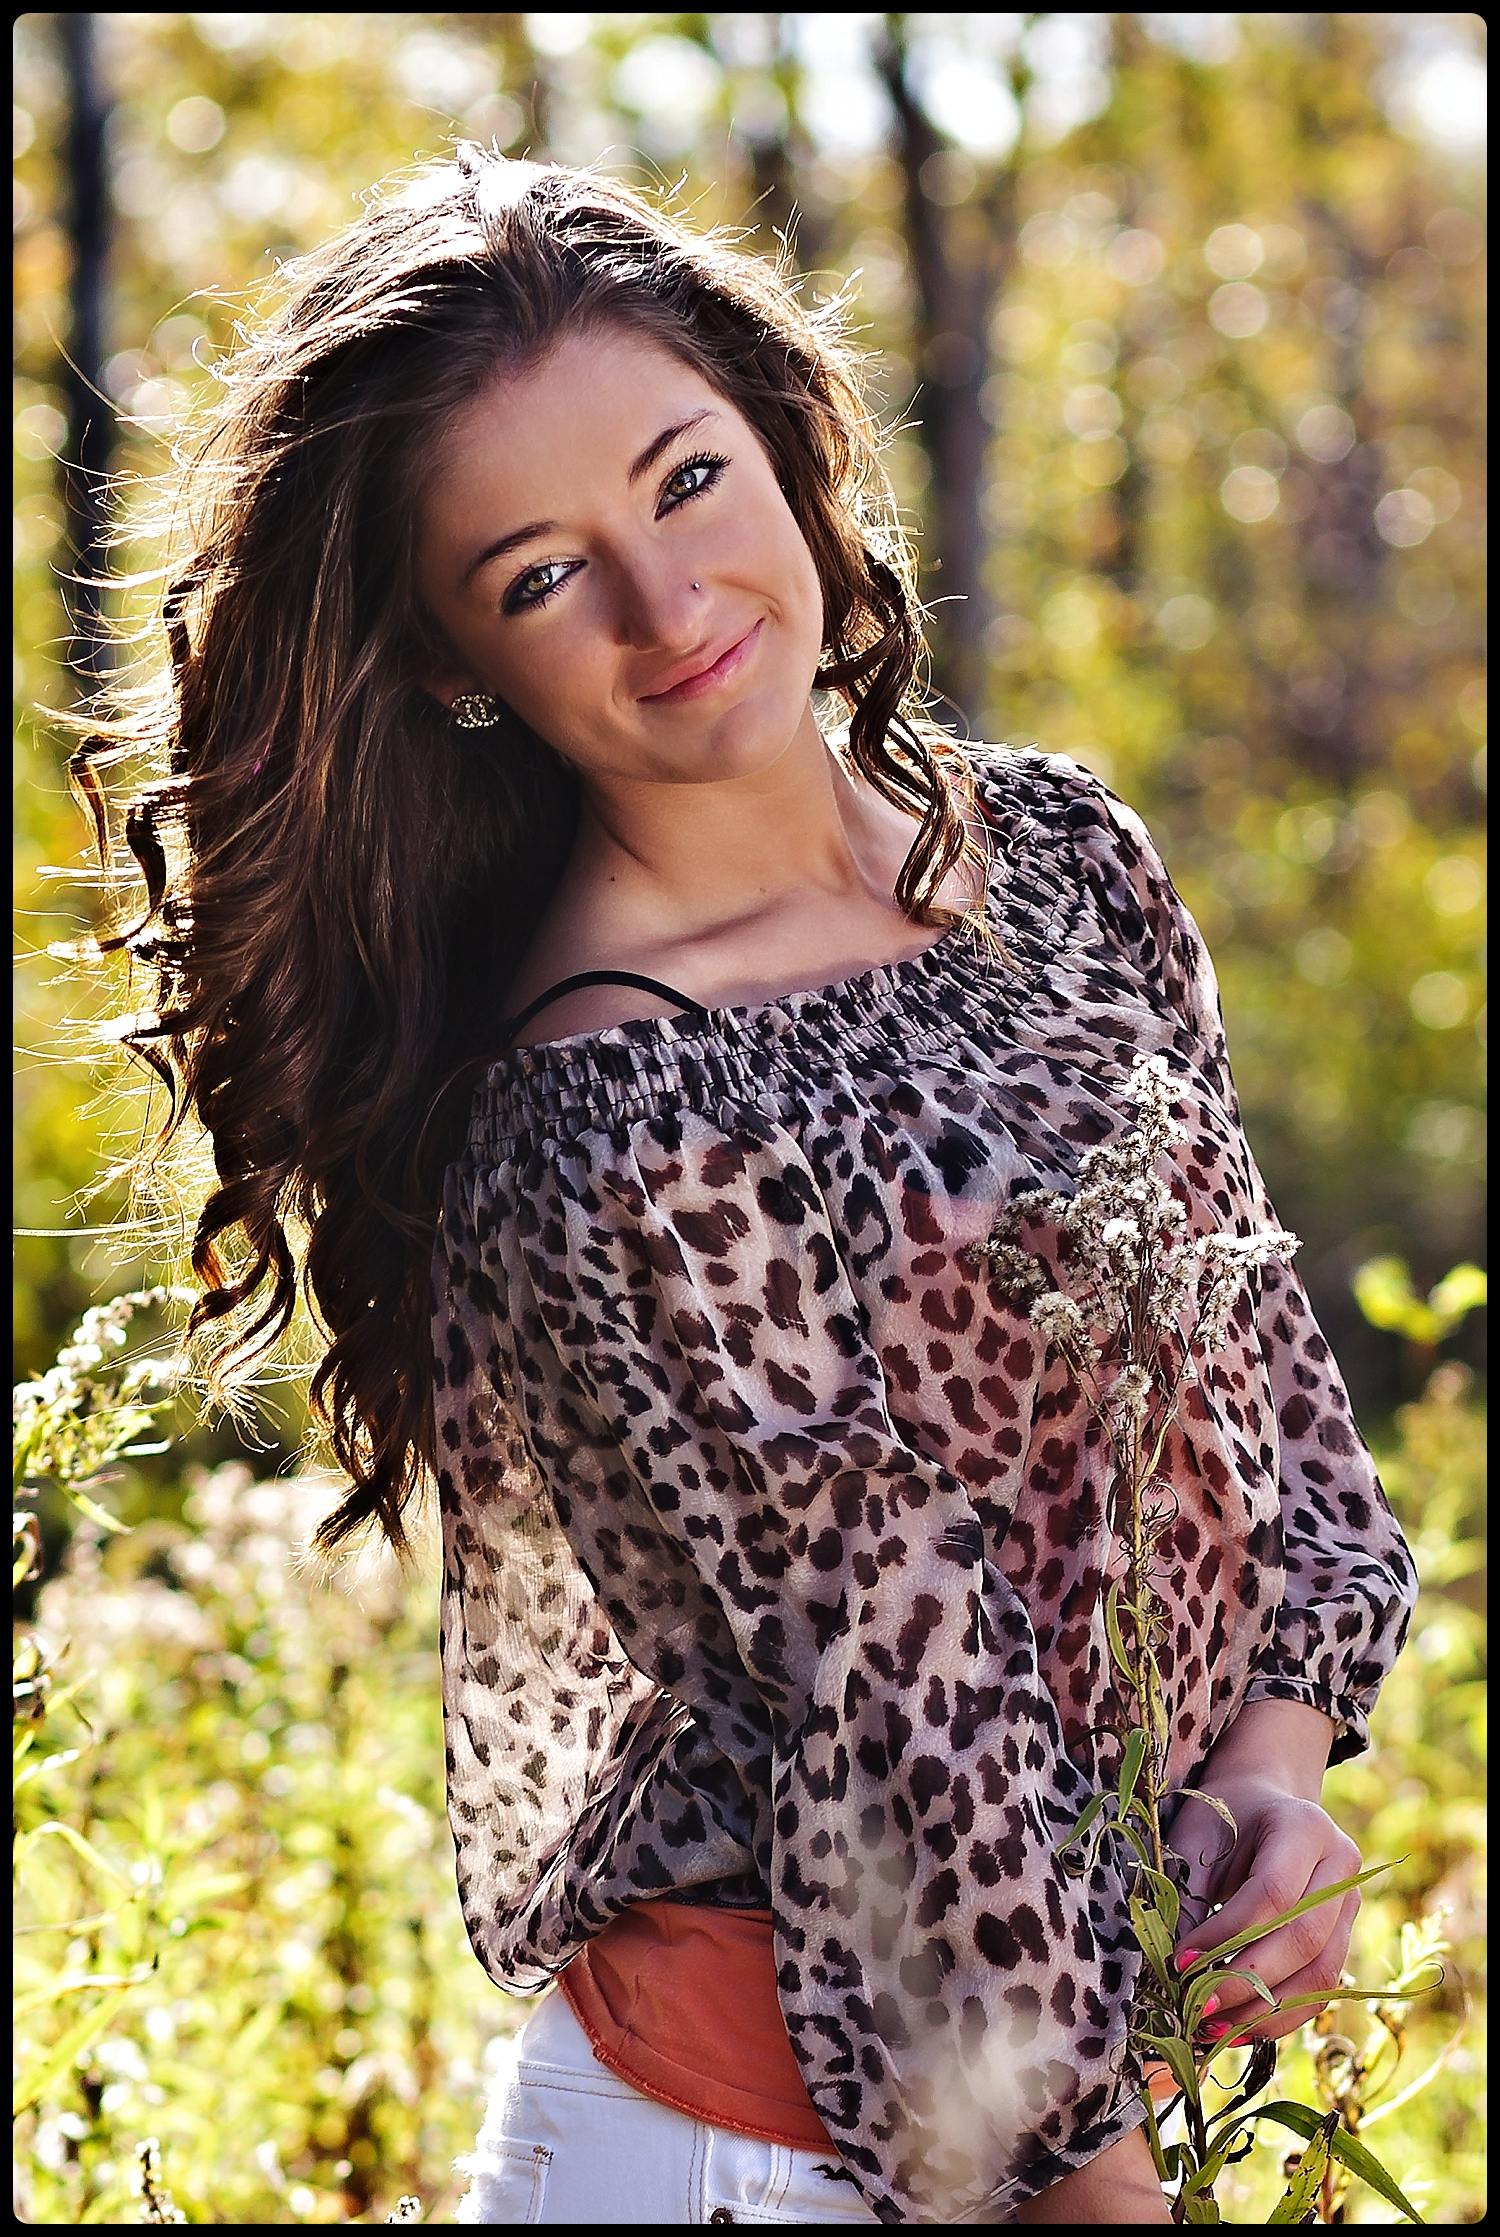 Bobbi created the most Flattering, Natural, Beautiful, and Creative Portfolio array of Our Angel, Alexandria Autumn for her Senior Pictures! And everything I've seen her do since has been extremely Moving and Heartfelt! Can't get any better than her!